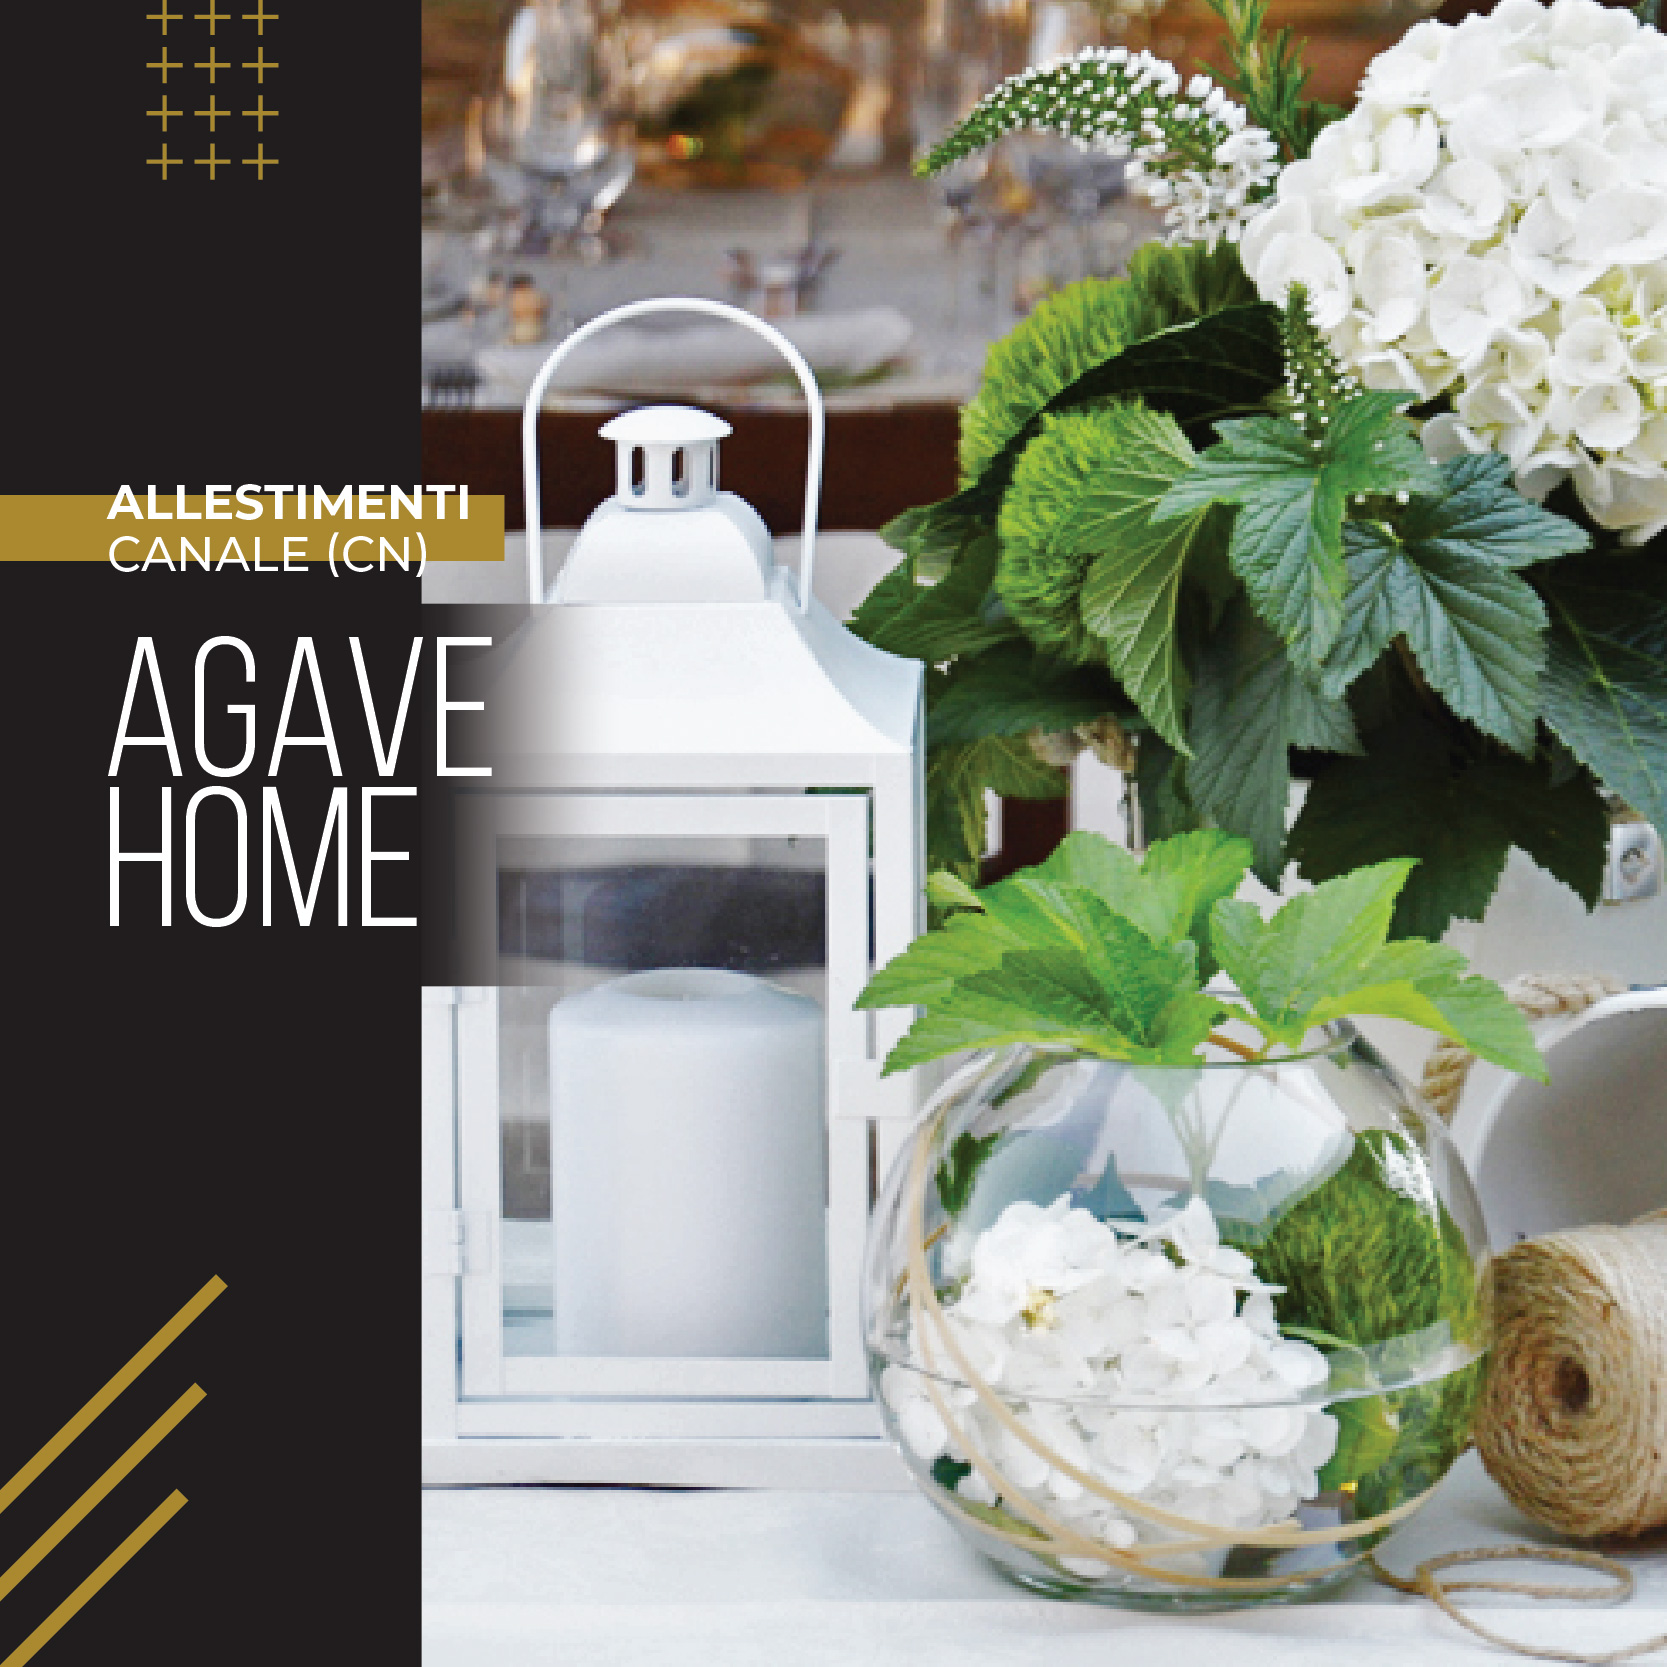 AGAVE HOME